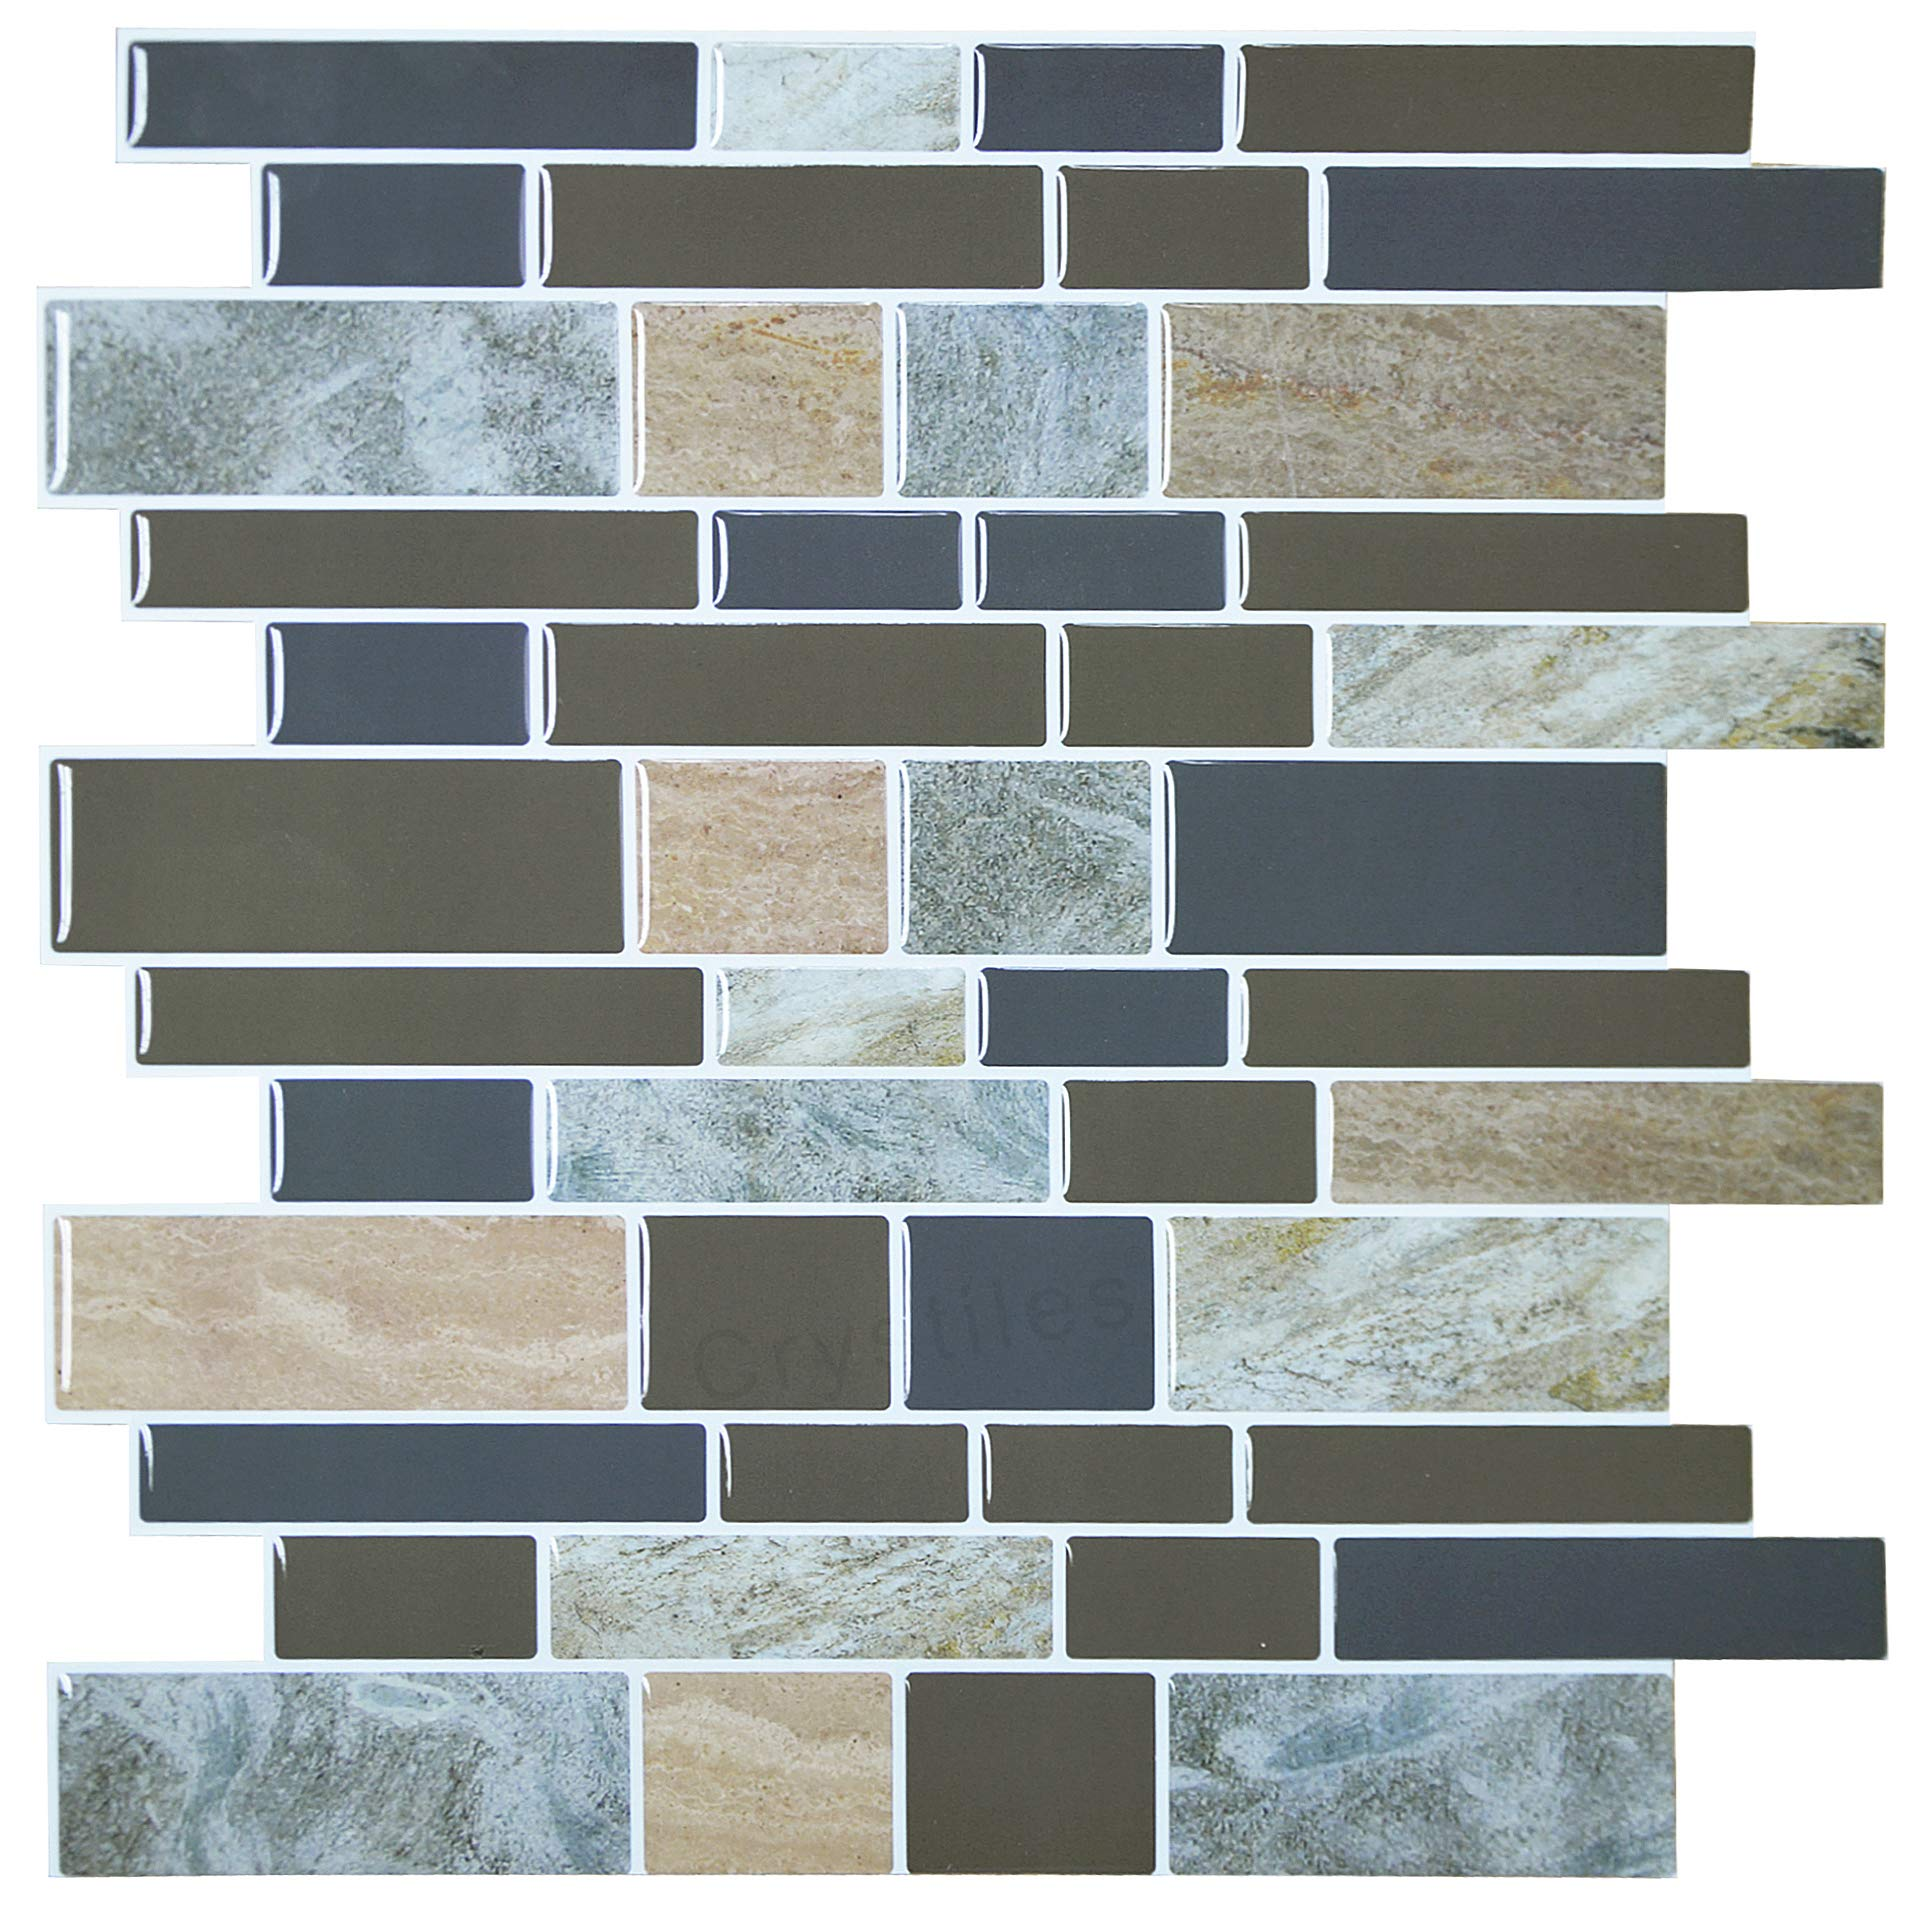 Crystiles 12''x12'' Vinyl Peel and Stick Backsplash Tile, Multi-Color Marbles, Pro Series Thicker Version, 4-Sheet Pack